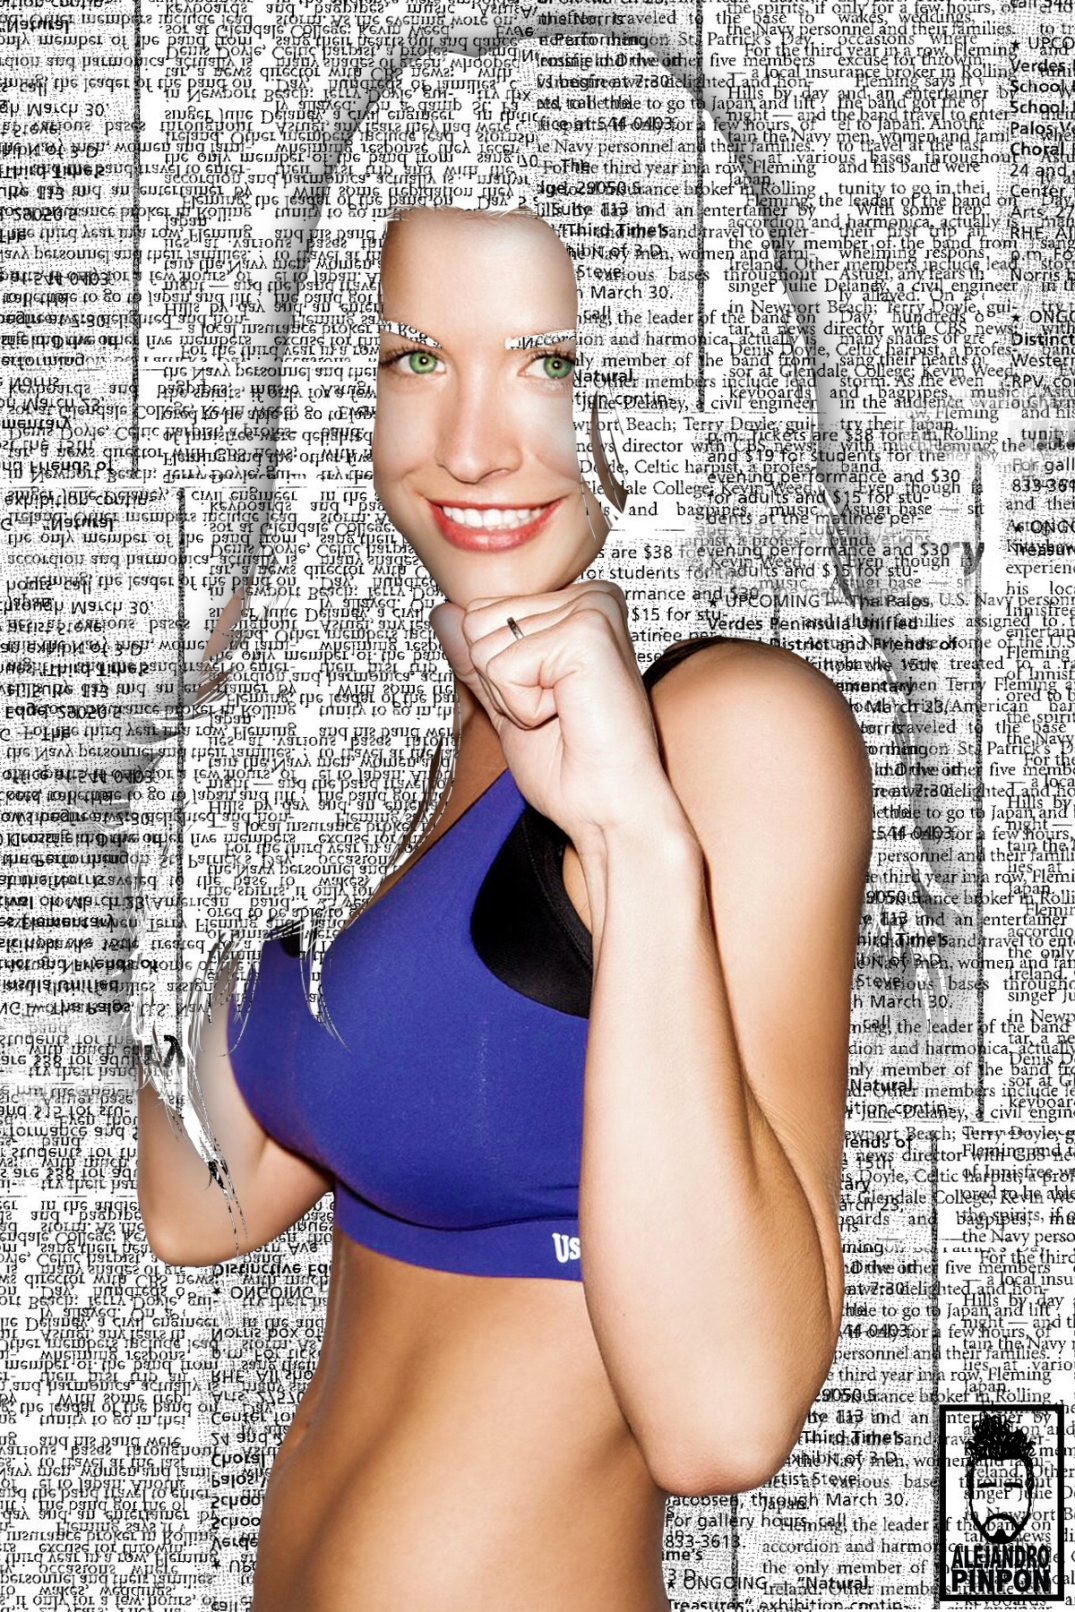 Gemma Atkinson newspaper by Alejandro Pinpon